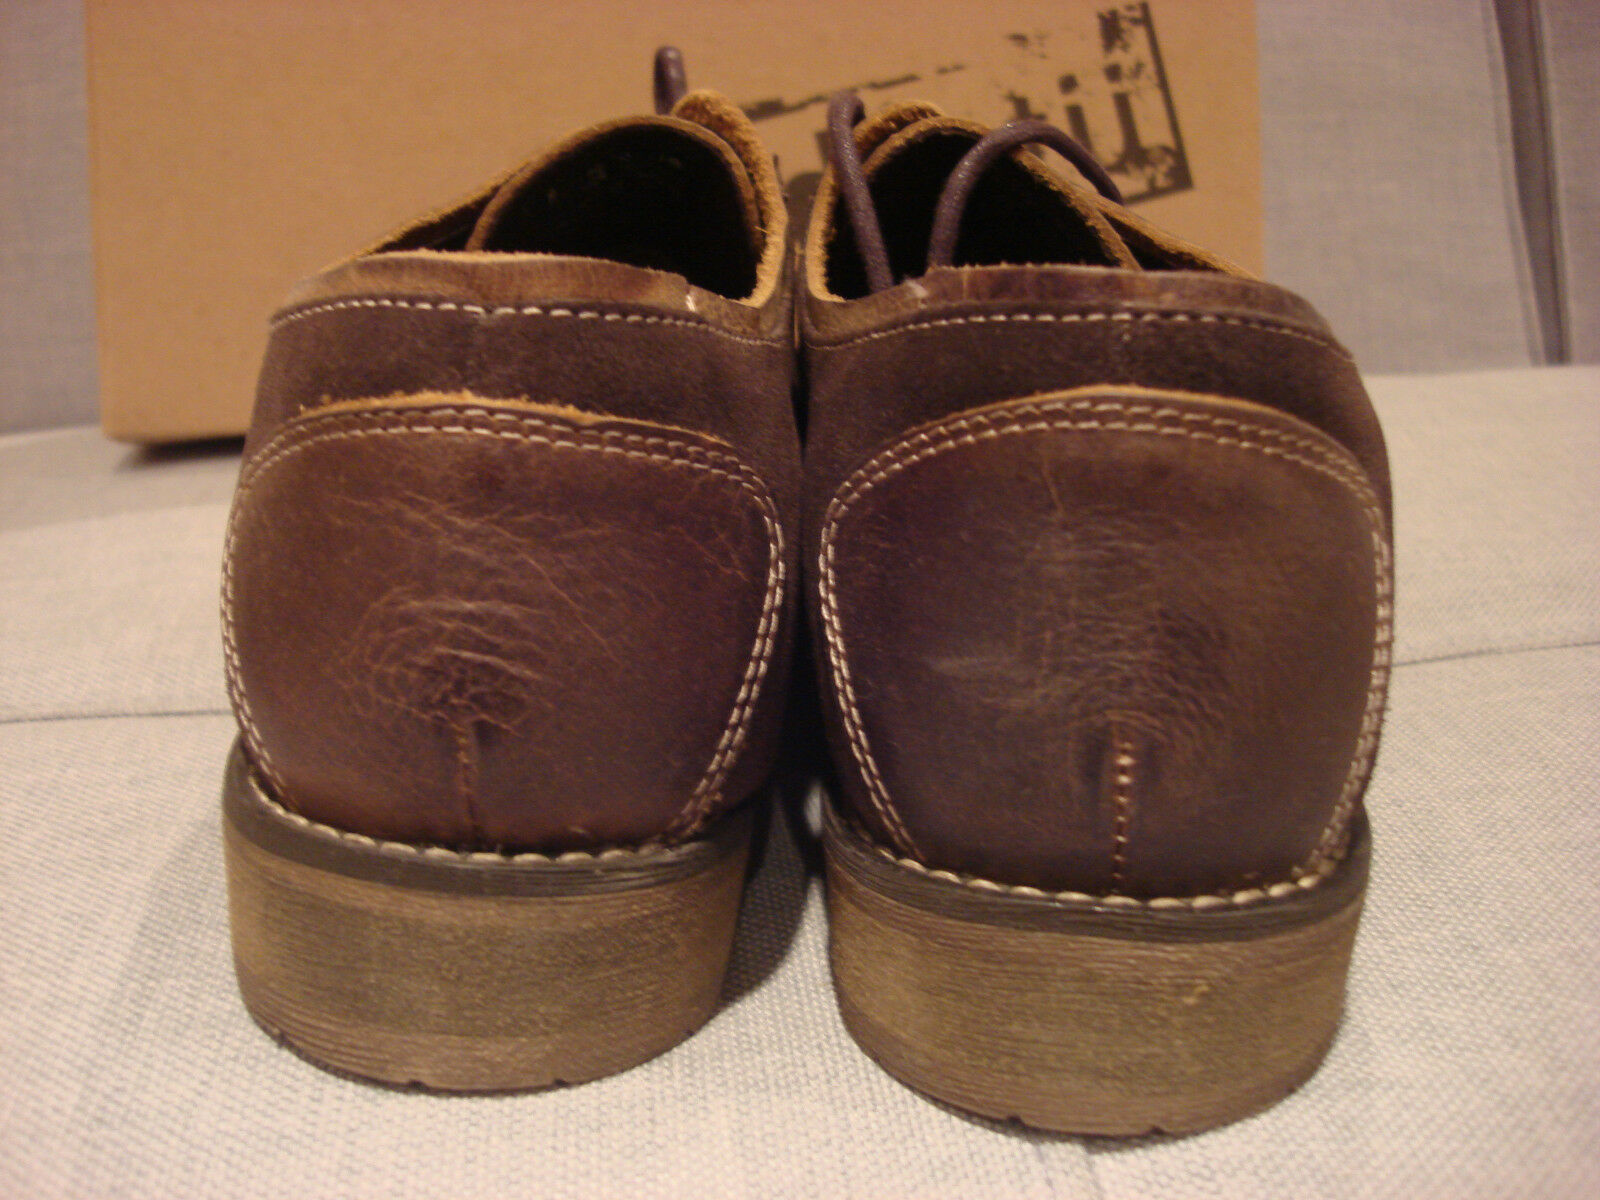 BED STU MEN'S REPEAL TAN GREENLAND DARK BROWN BRAND Schuhe SIZE 9 - BRAND BROWN NEW - NWT 054ba5